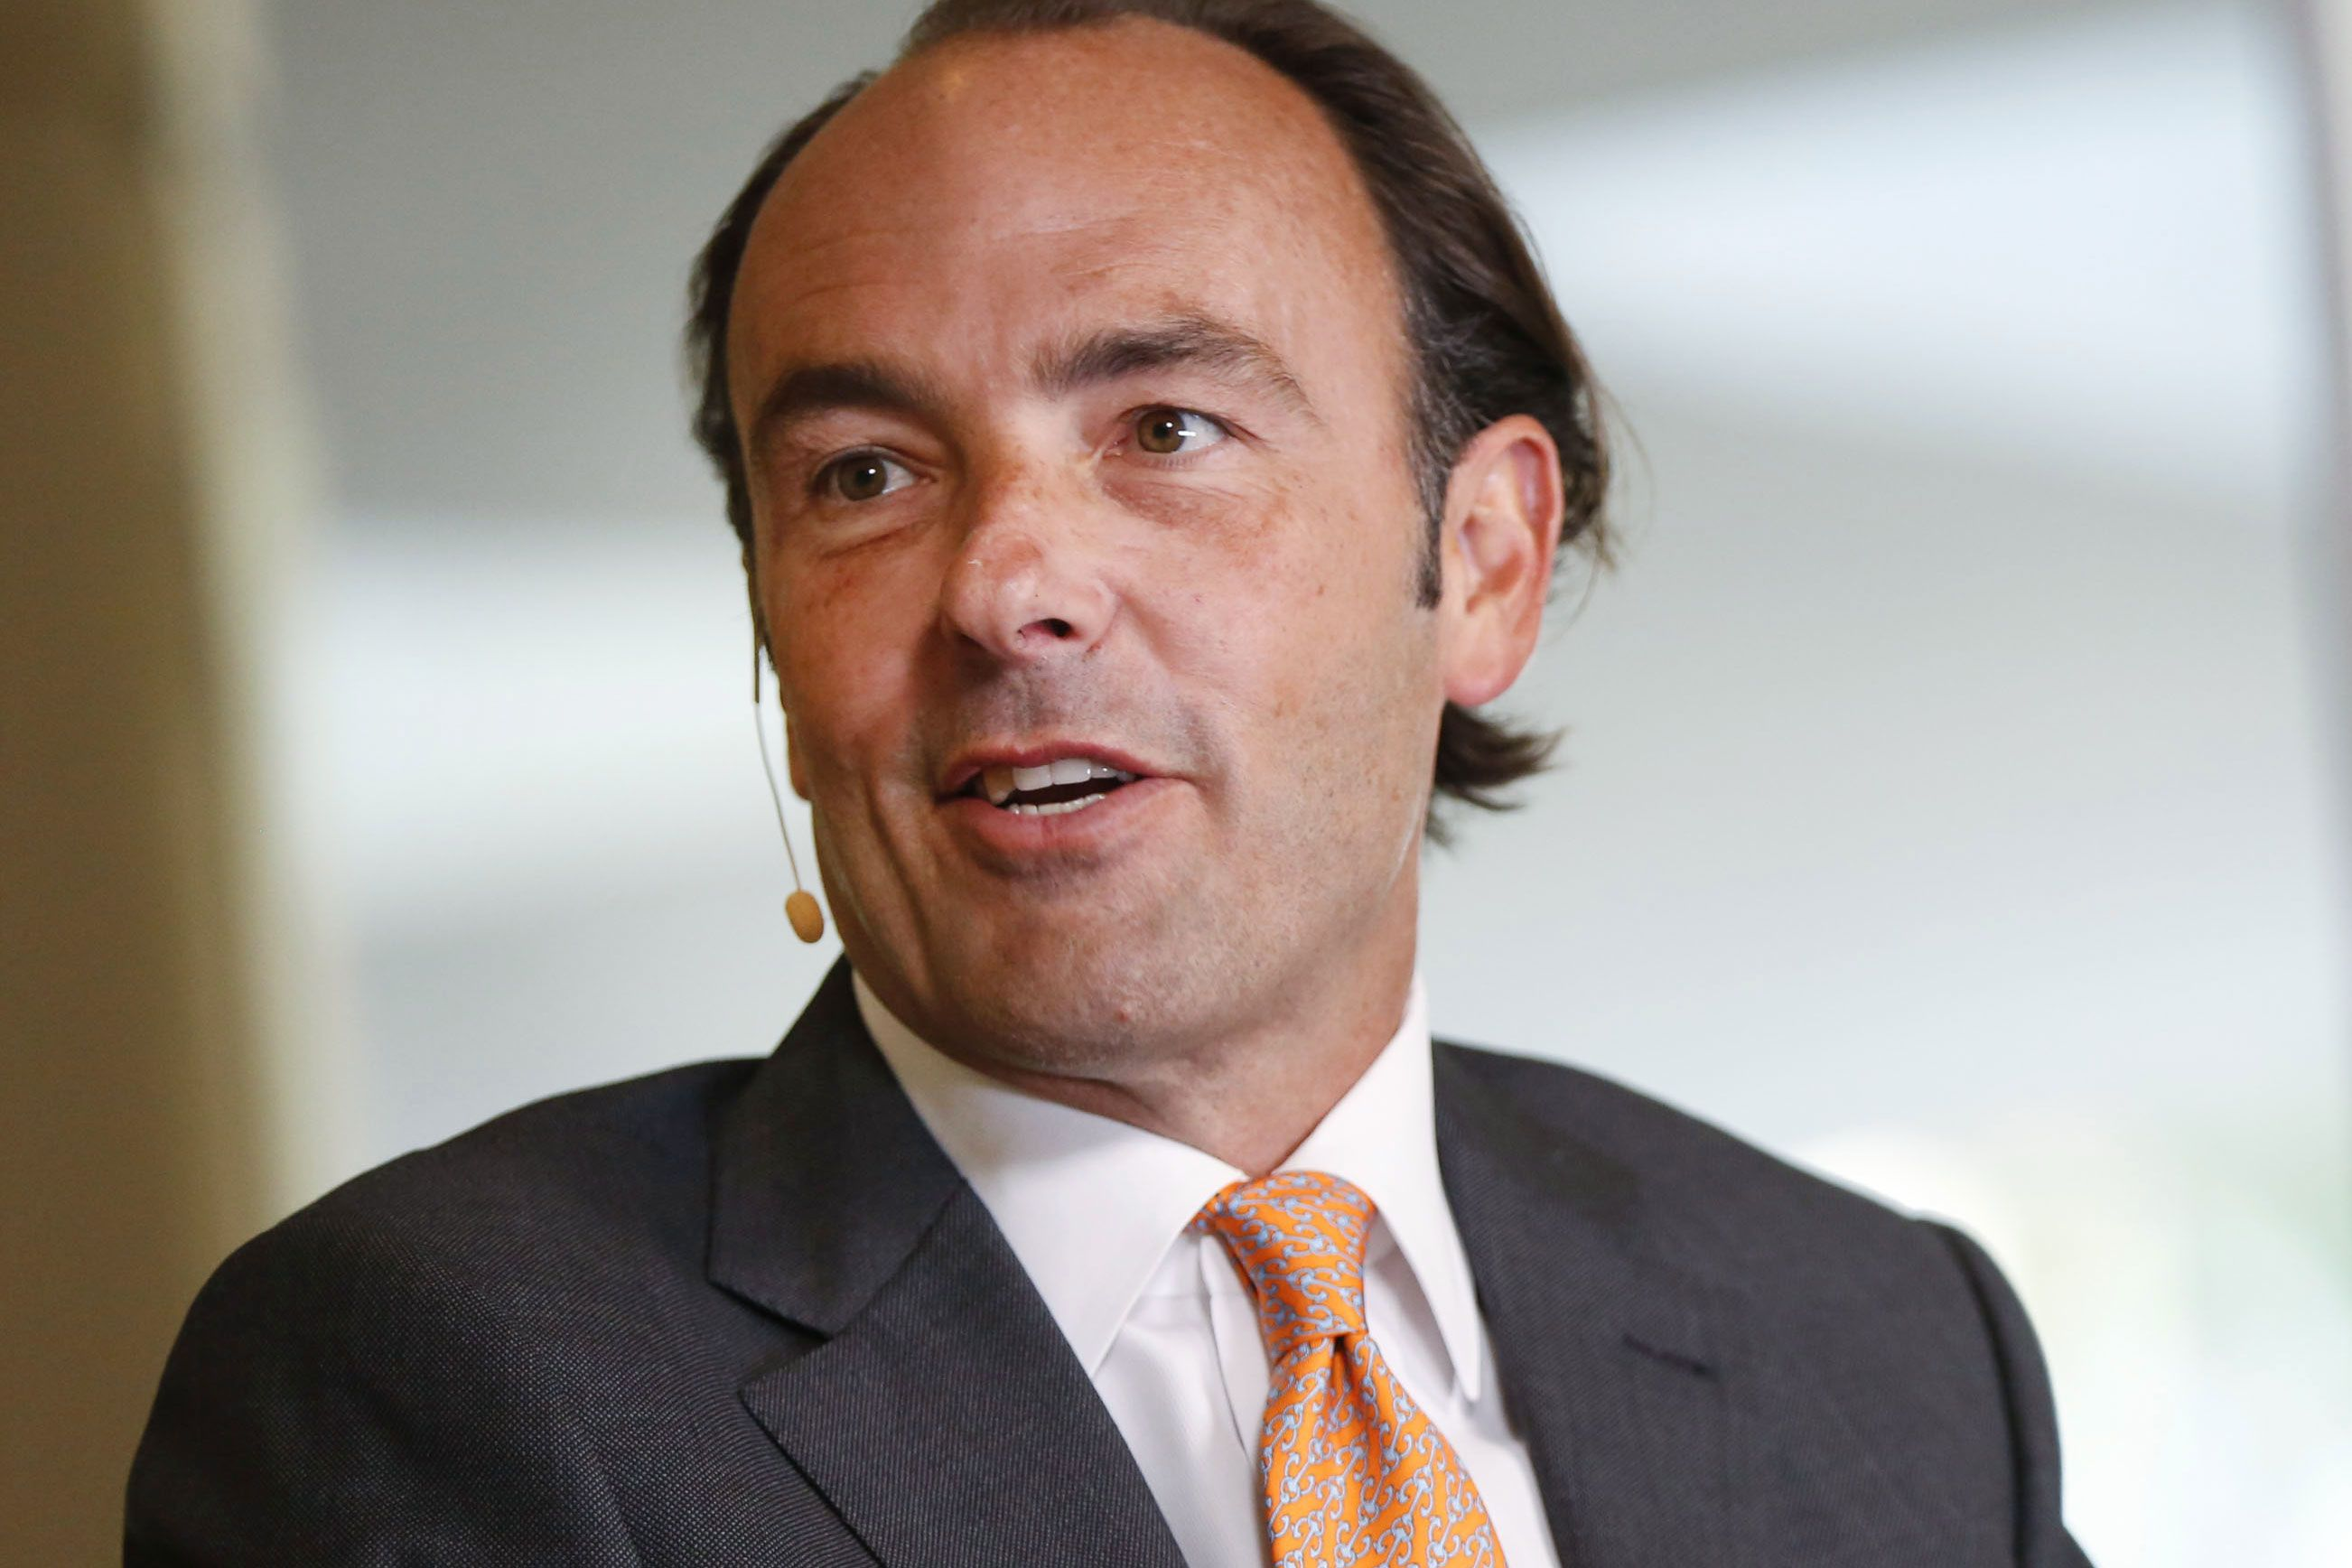 Hedge fund manager Kyle Bass says a US-China trade deal can't be reached